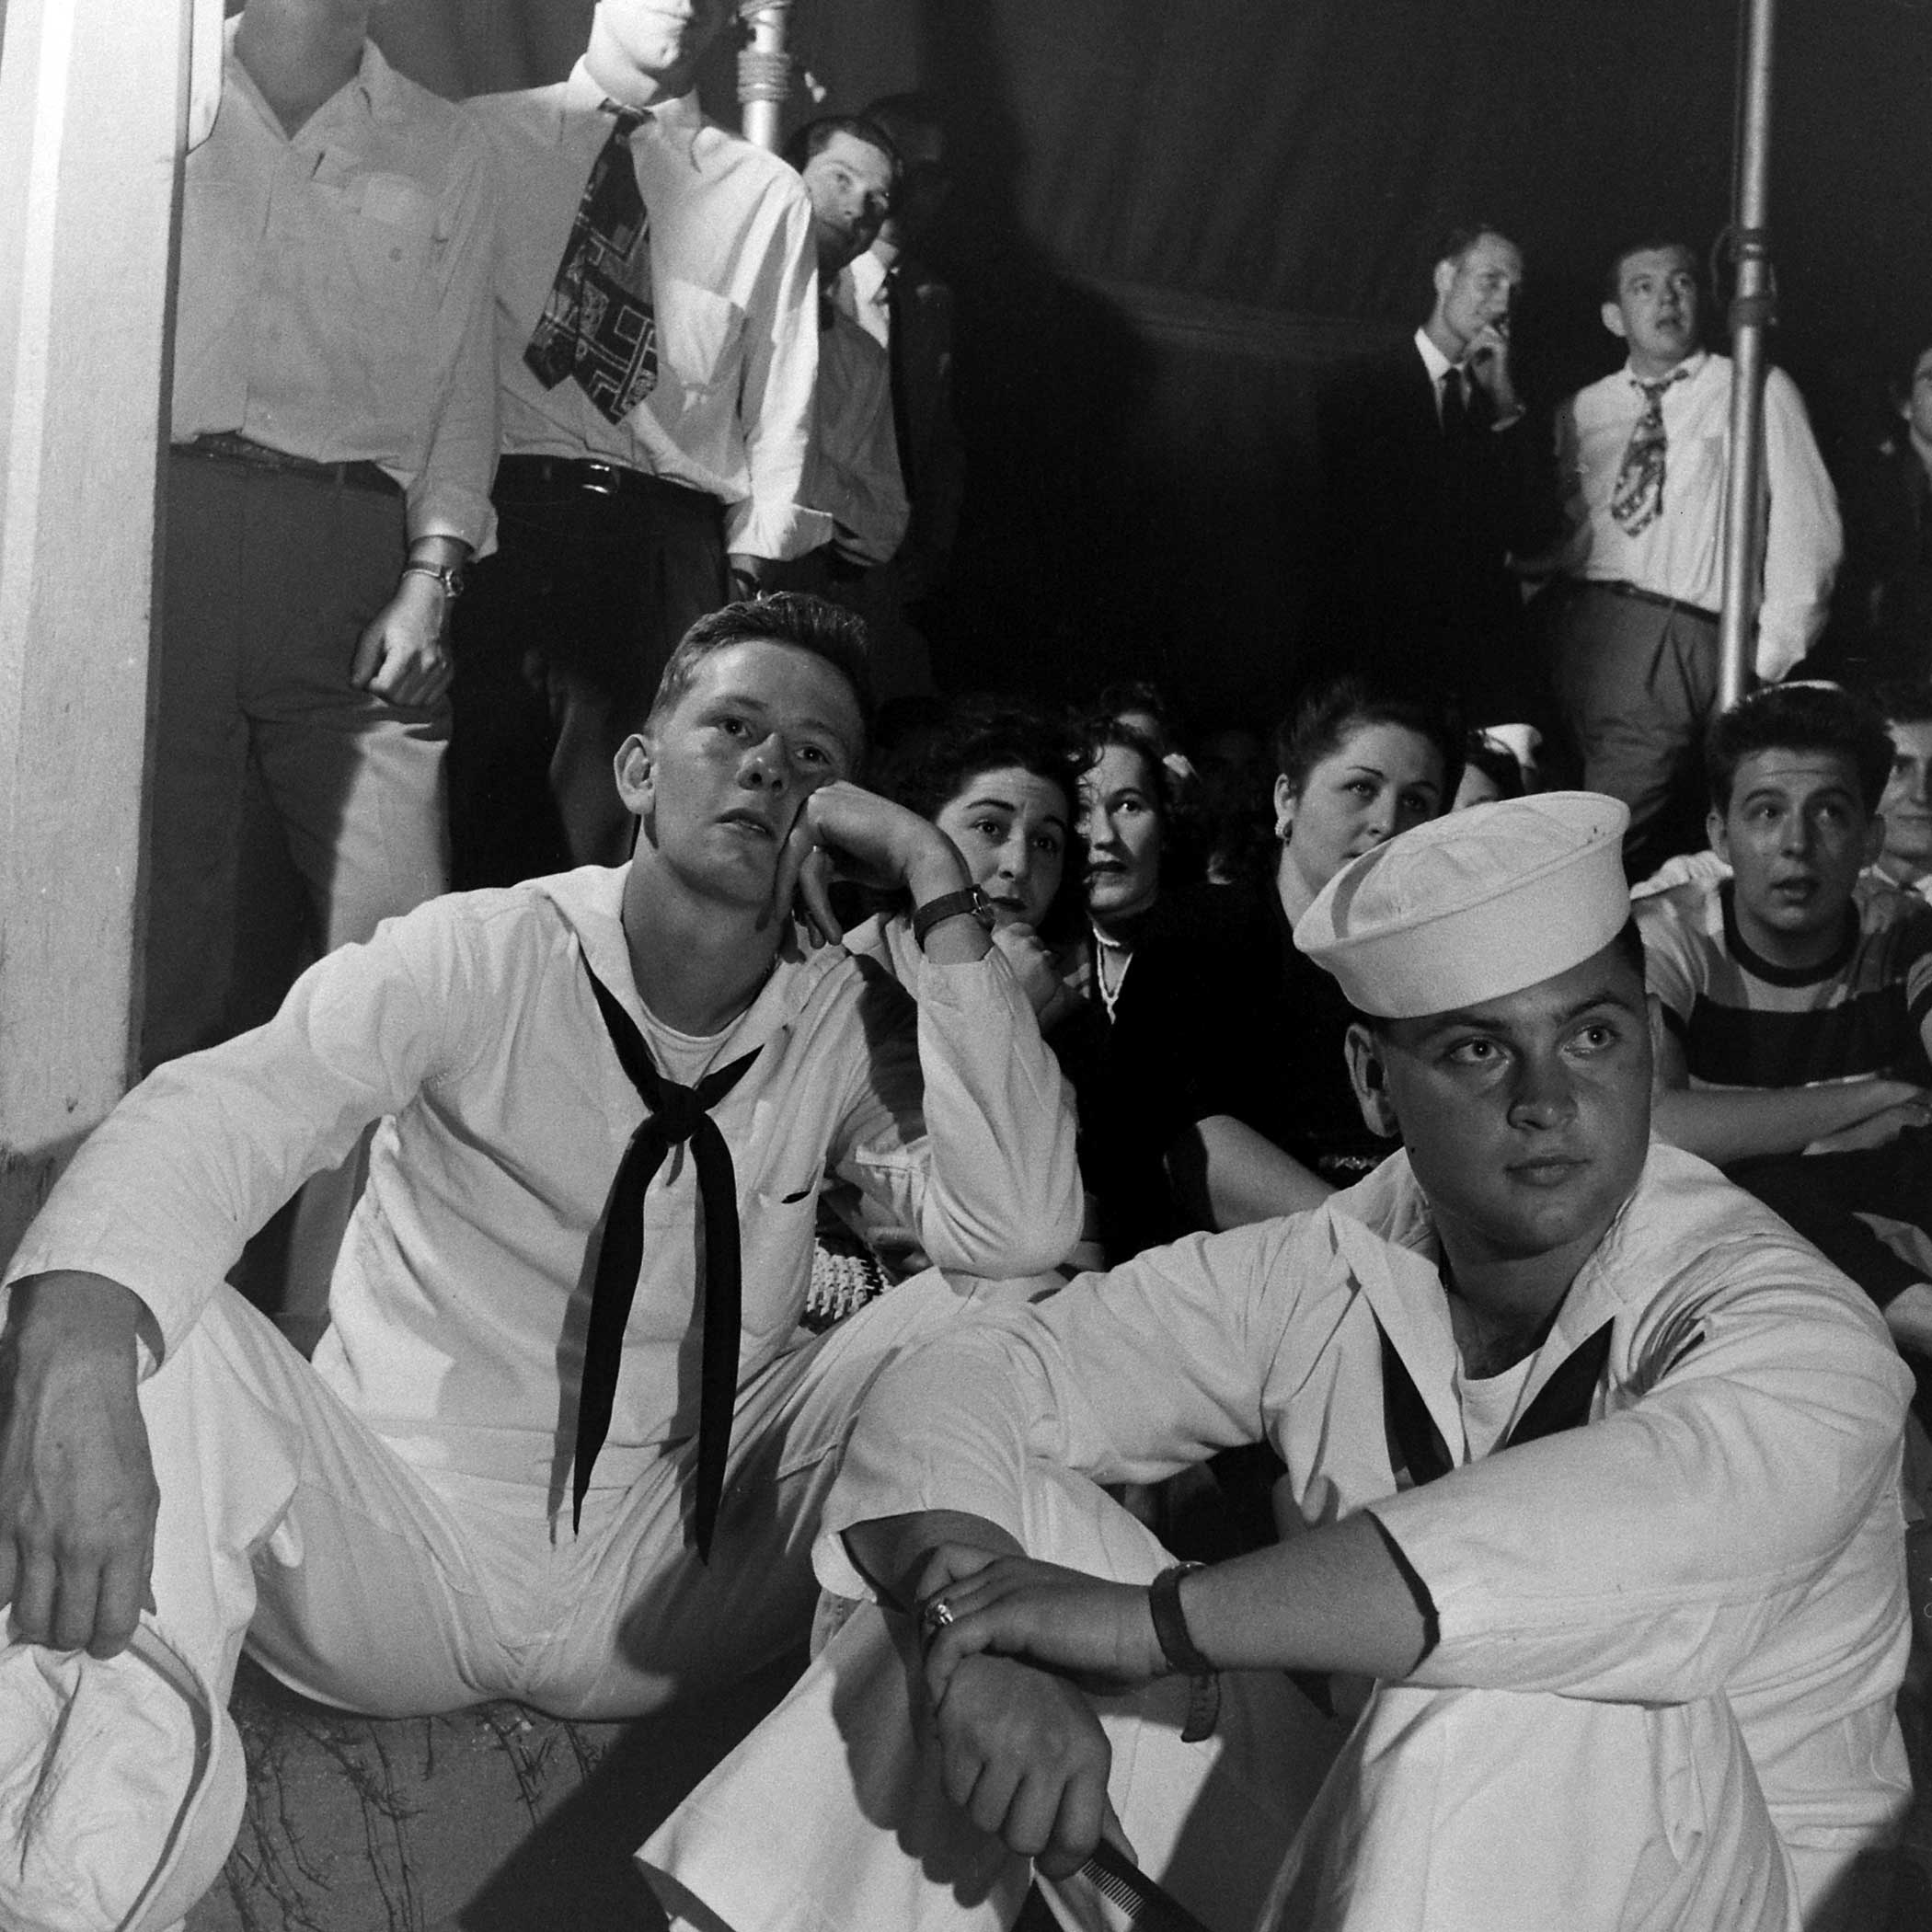 <b>Not published in LIFE.</b> Audience at a Gypsy Rose Lee burlesque show in Memphis, Tenn., 1949.